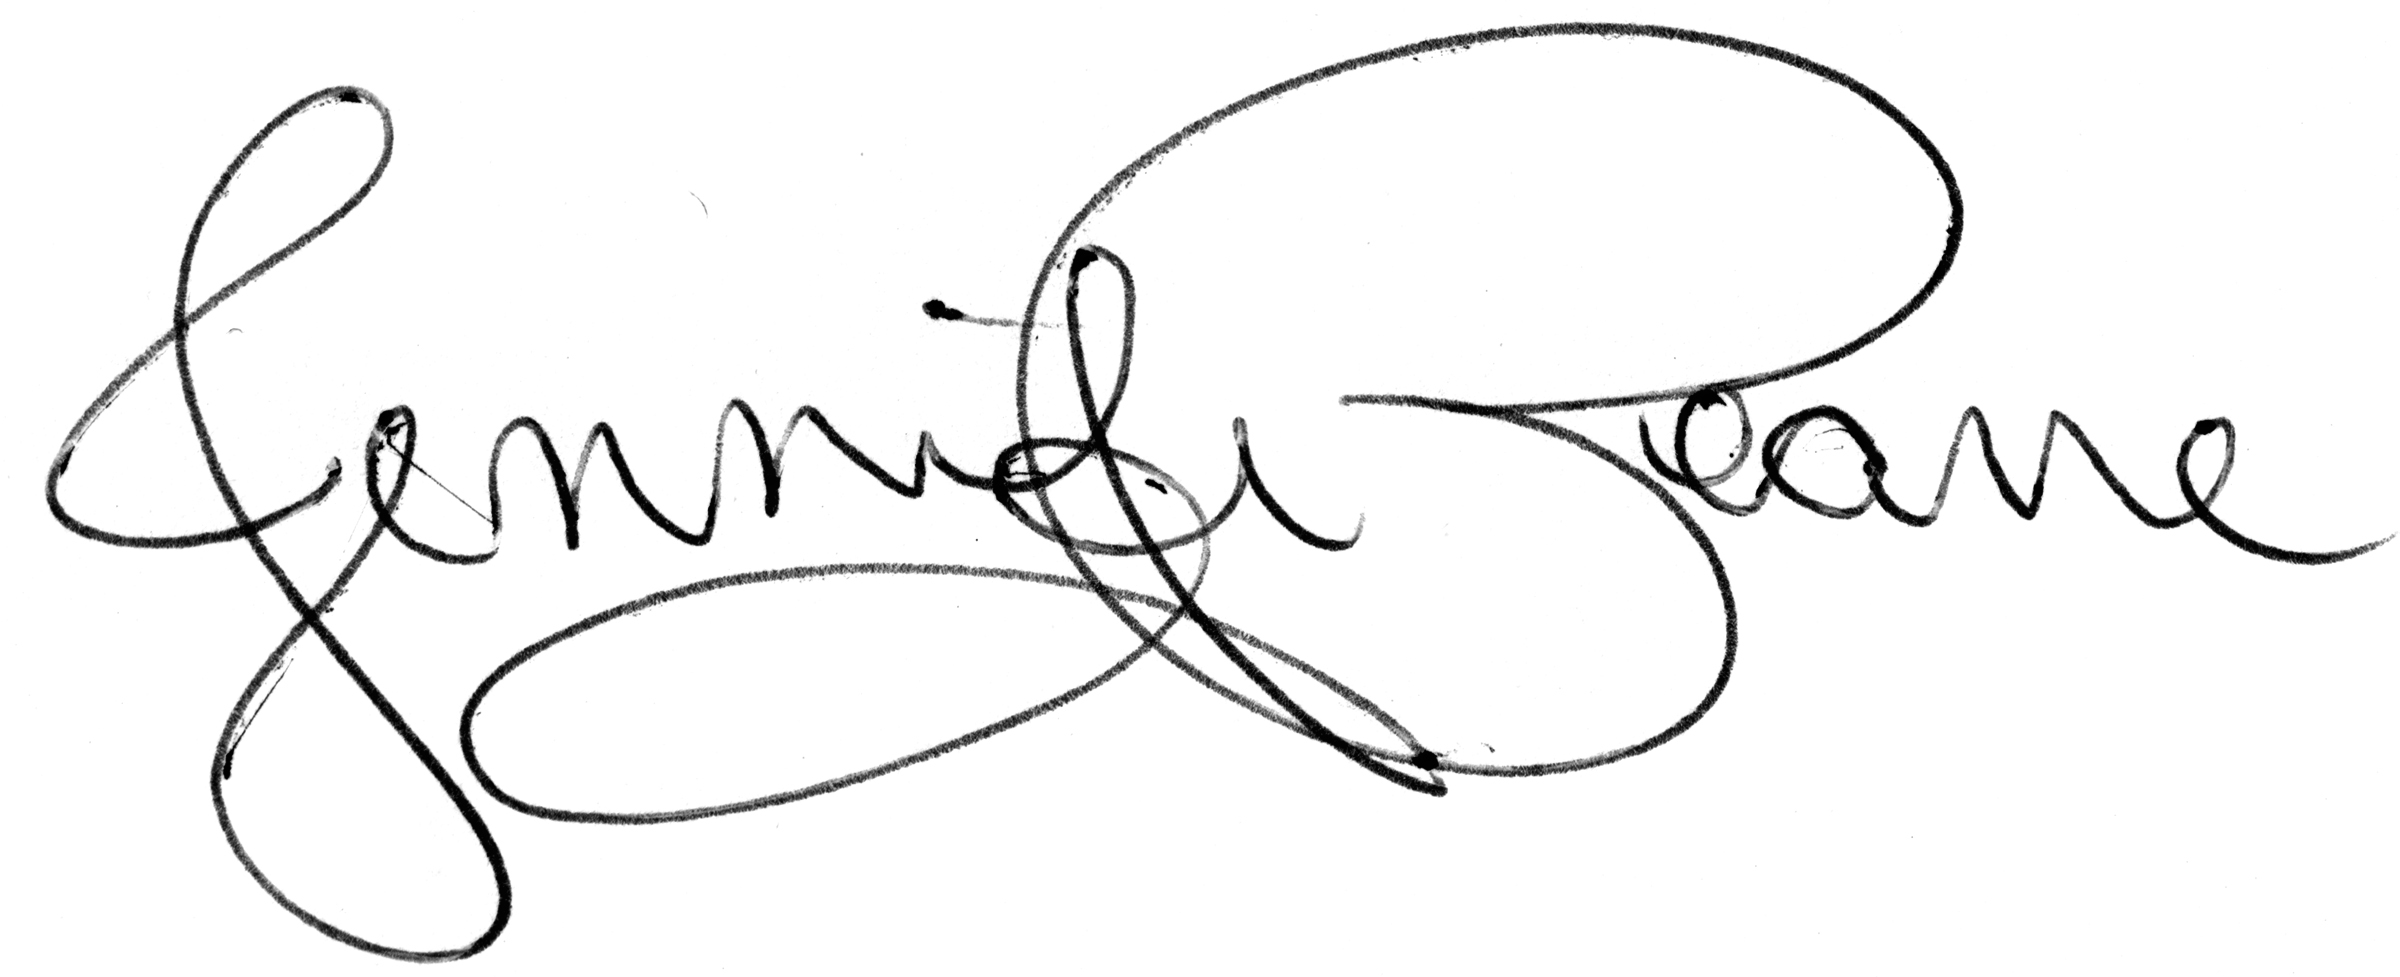 Jennifer Pearre Signature